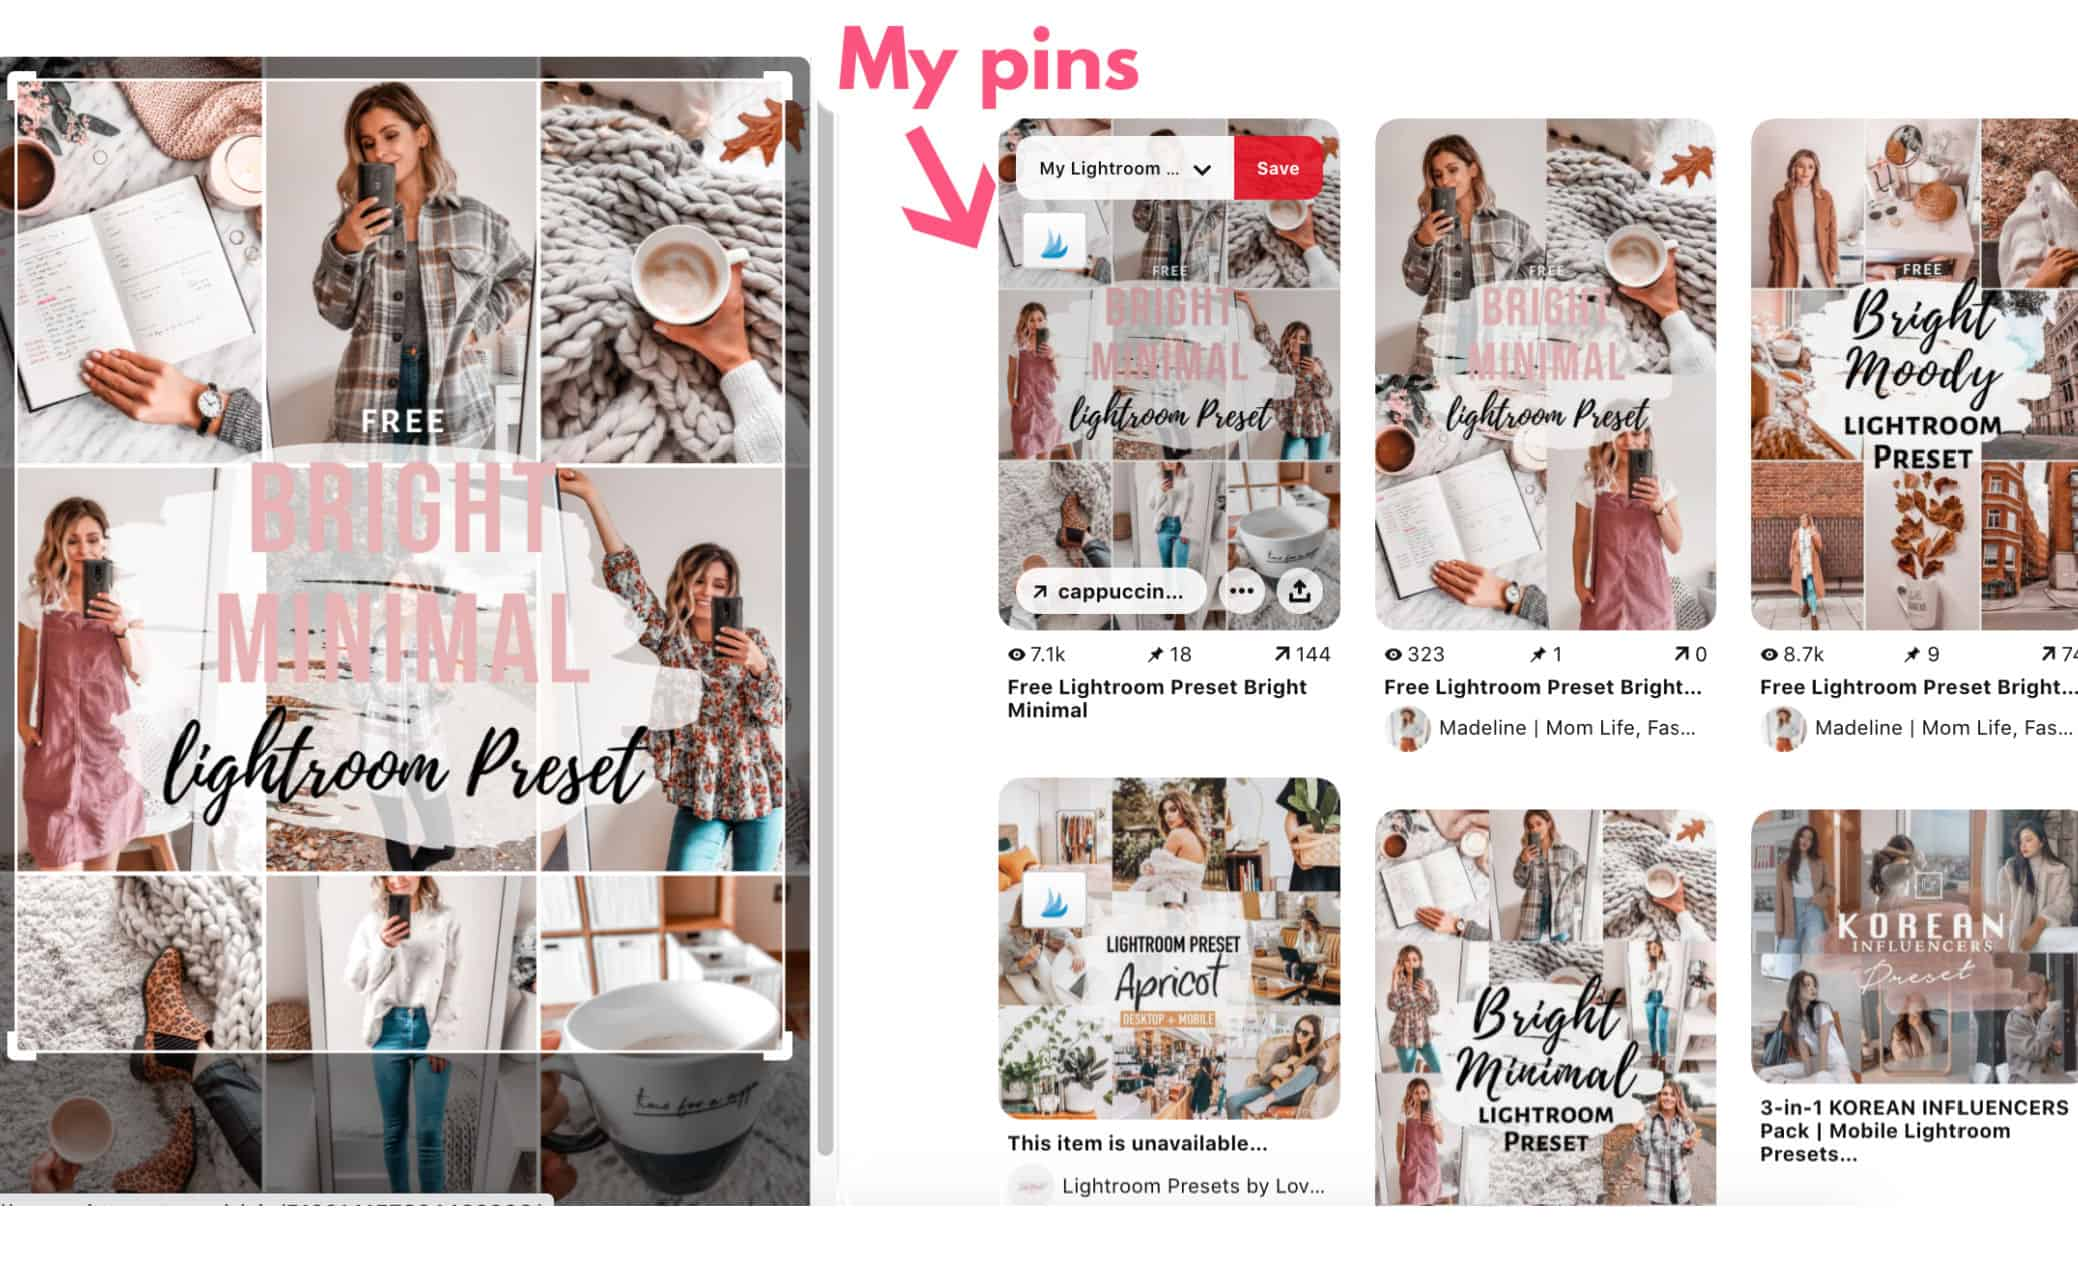 How to find your stolen pins on Pinterest